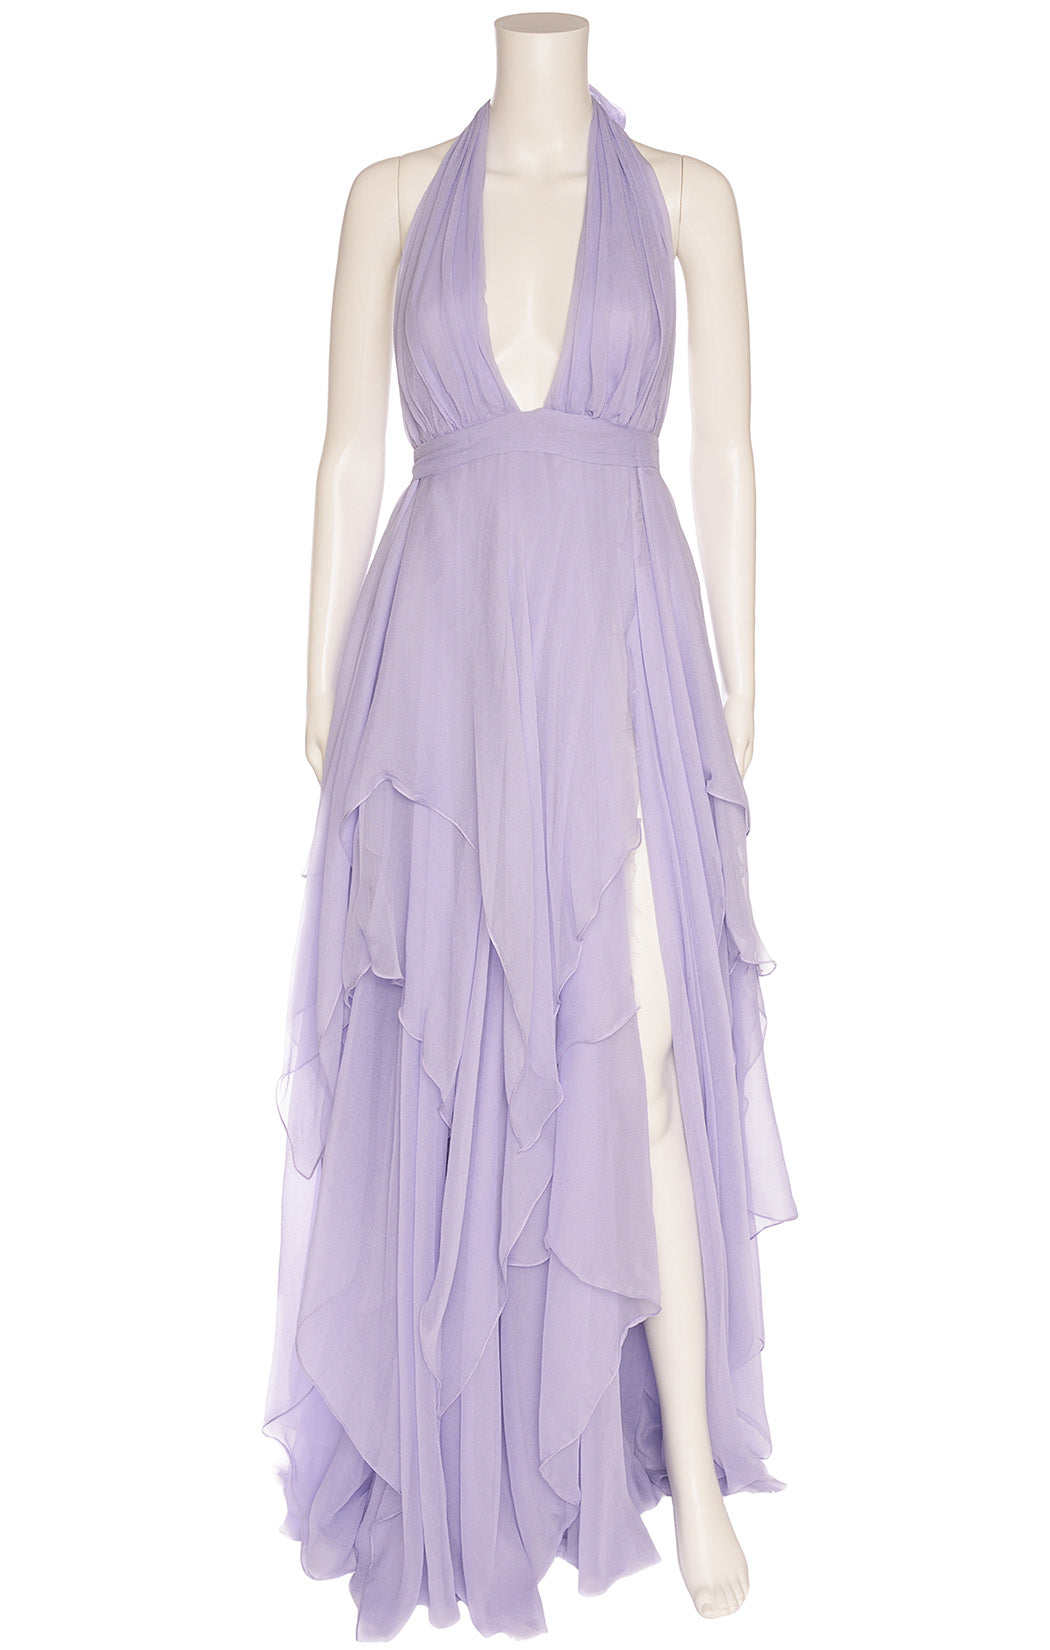 Lavender halter low neck long dress with full multi tiered bottom